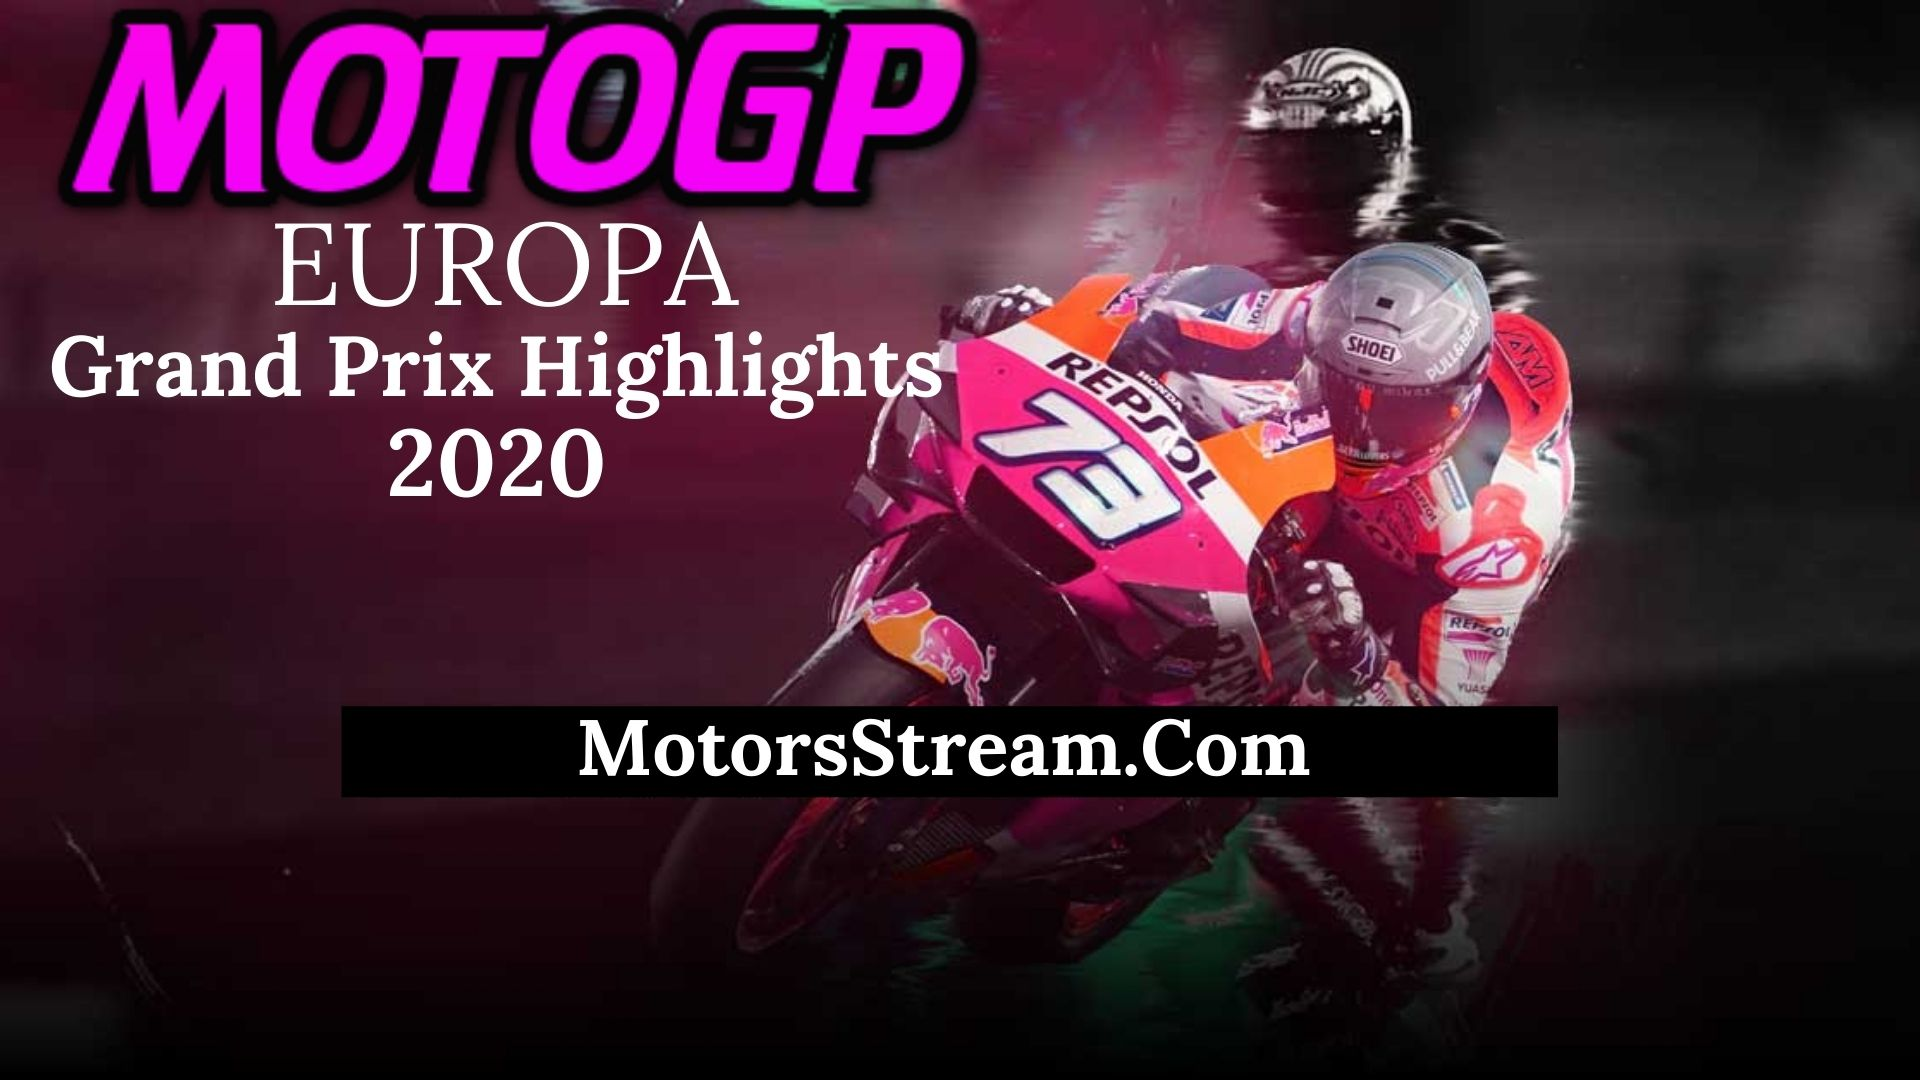 Europa Grand Prix Highlights 2020 MotoGP